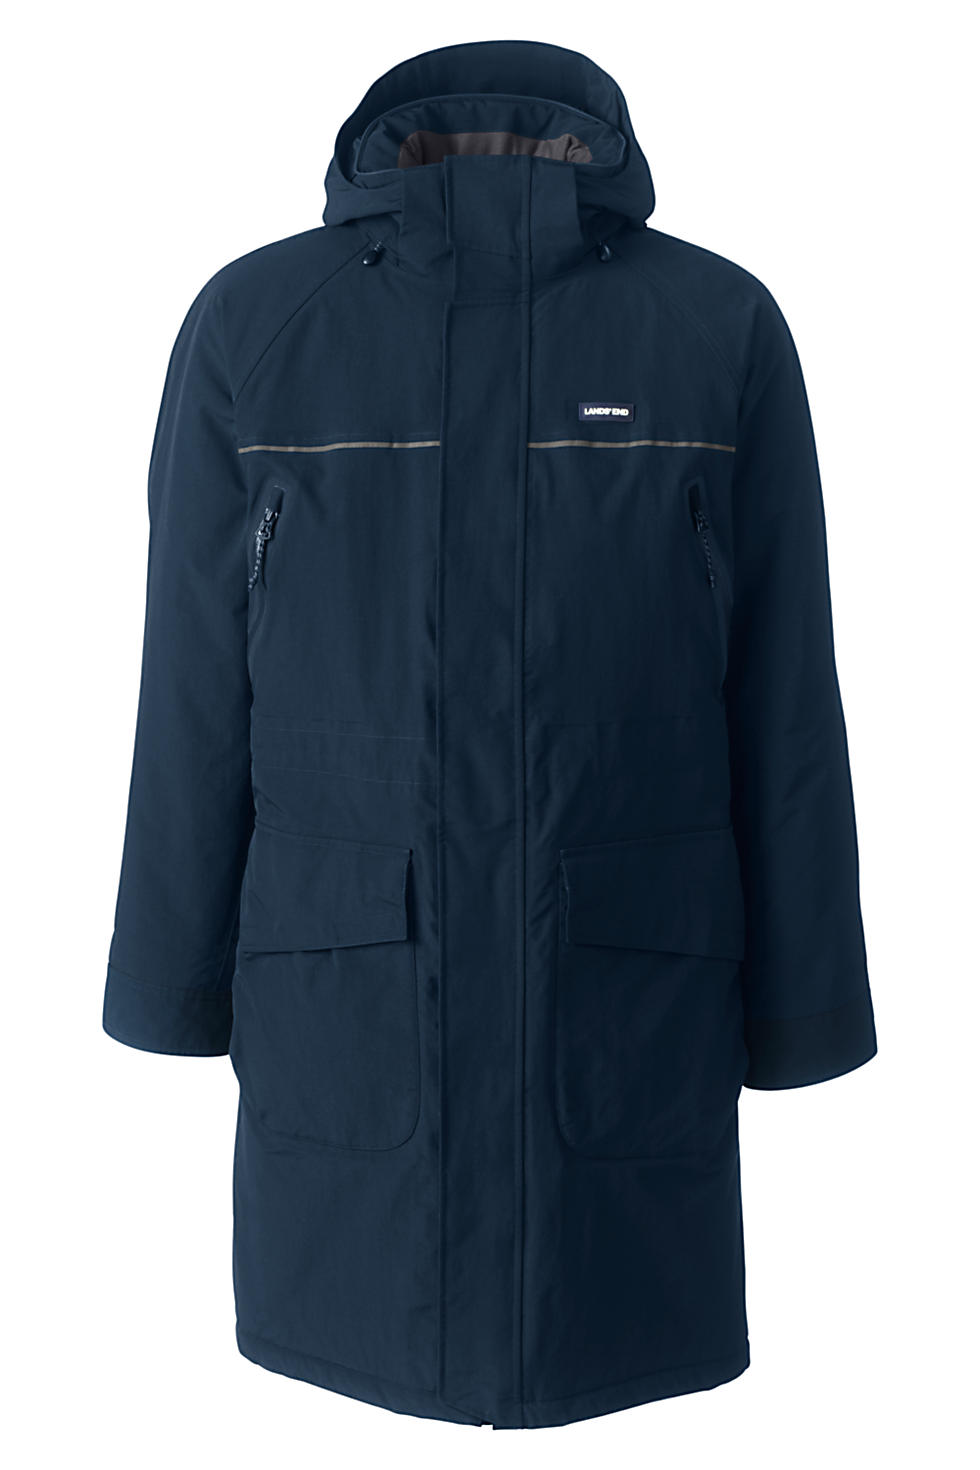 Lands End Mens Waterproof Squall Stadium Long Coat